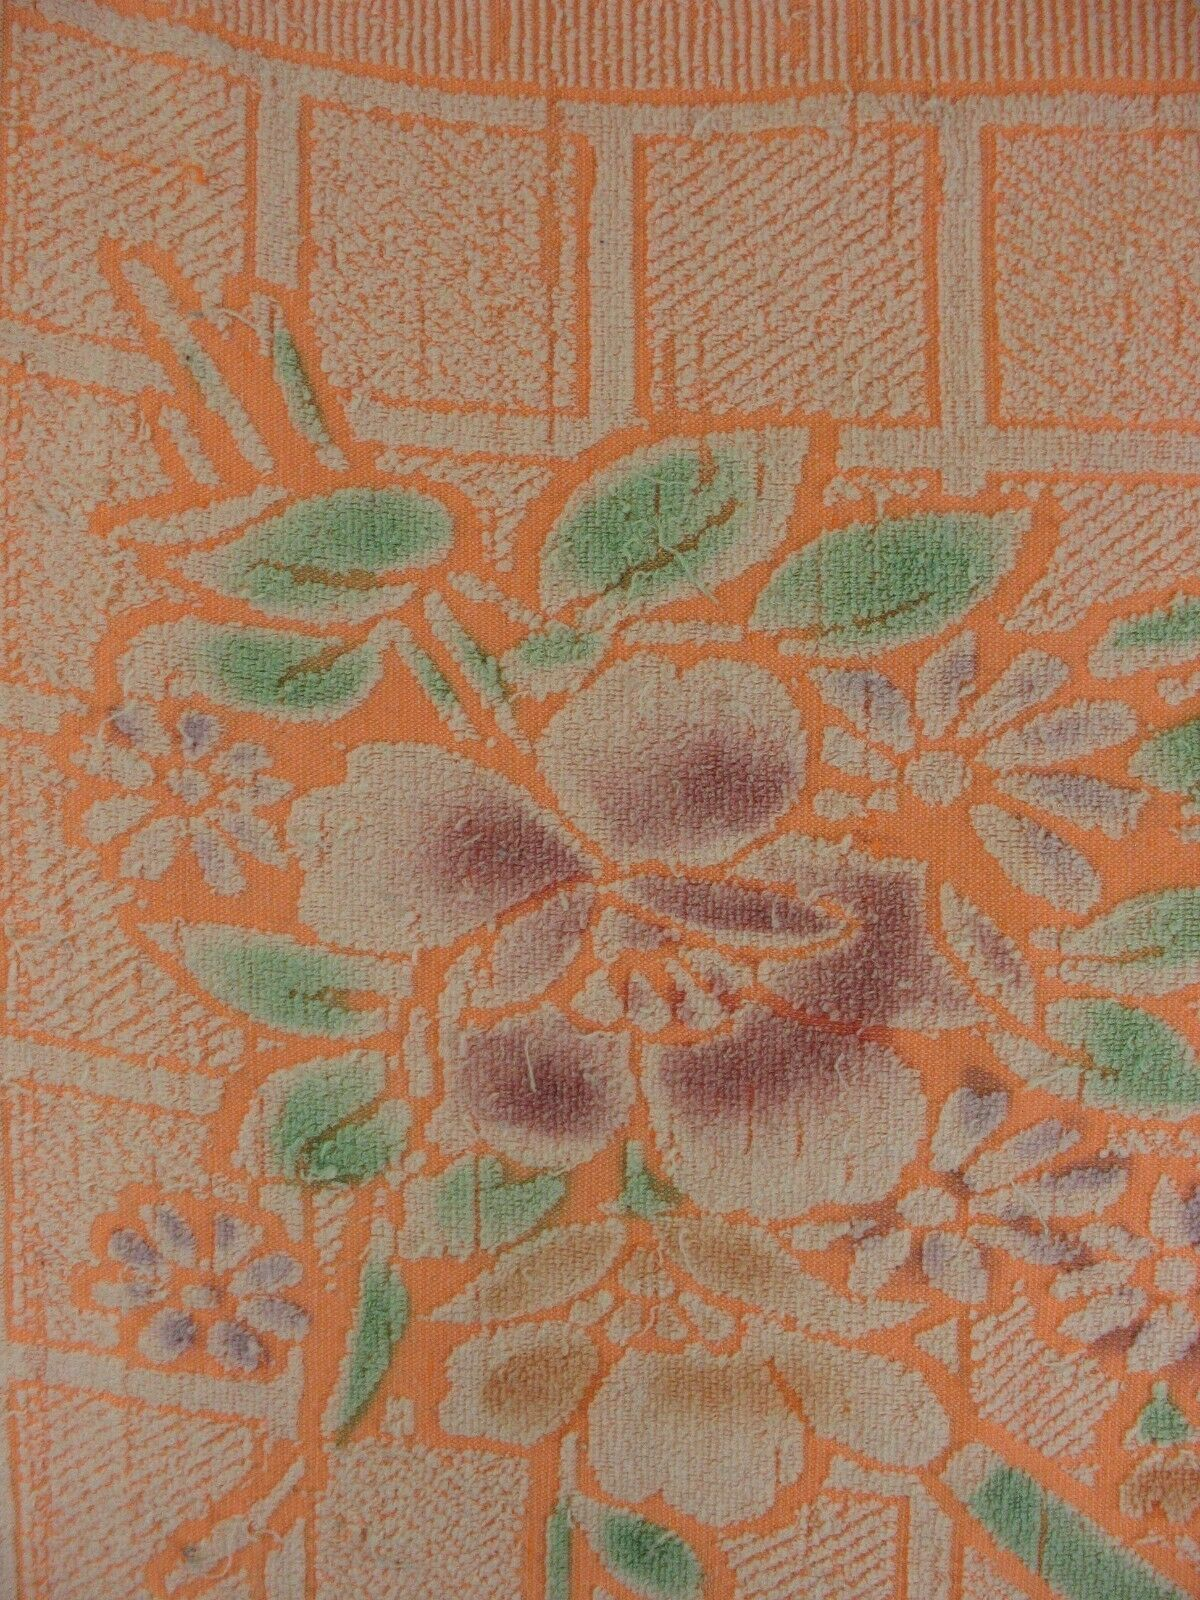 Unitex Intl Vintage Bath towel Neon Orange Floral image 2